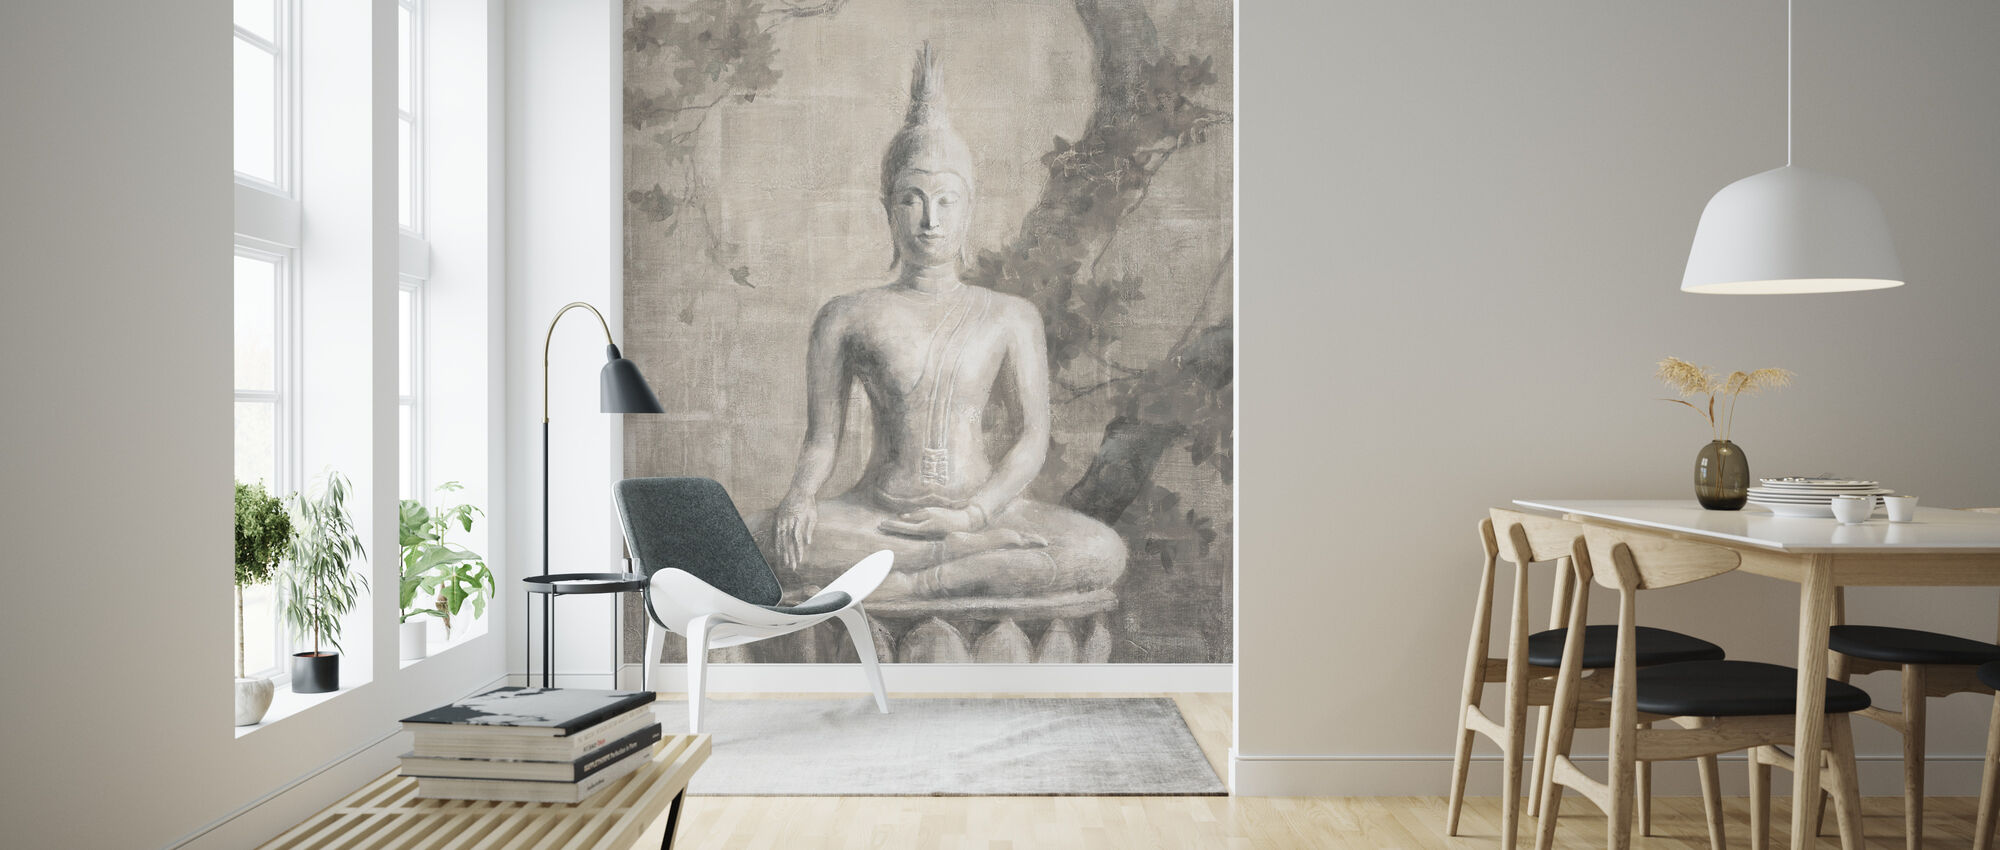 Buddha Neutral Crop - Wallpaper - Living Room